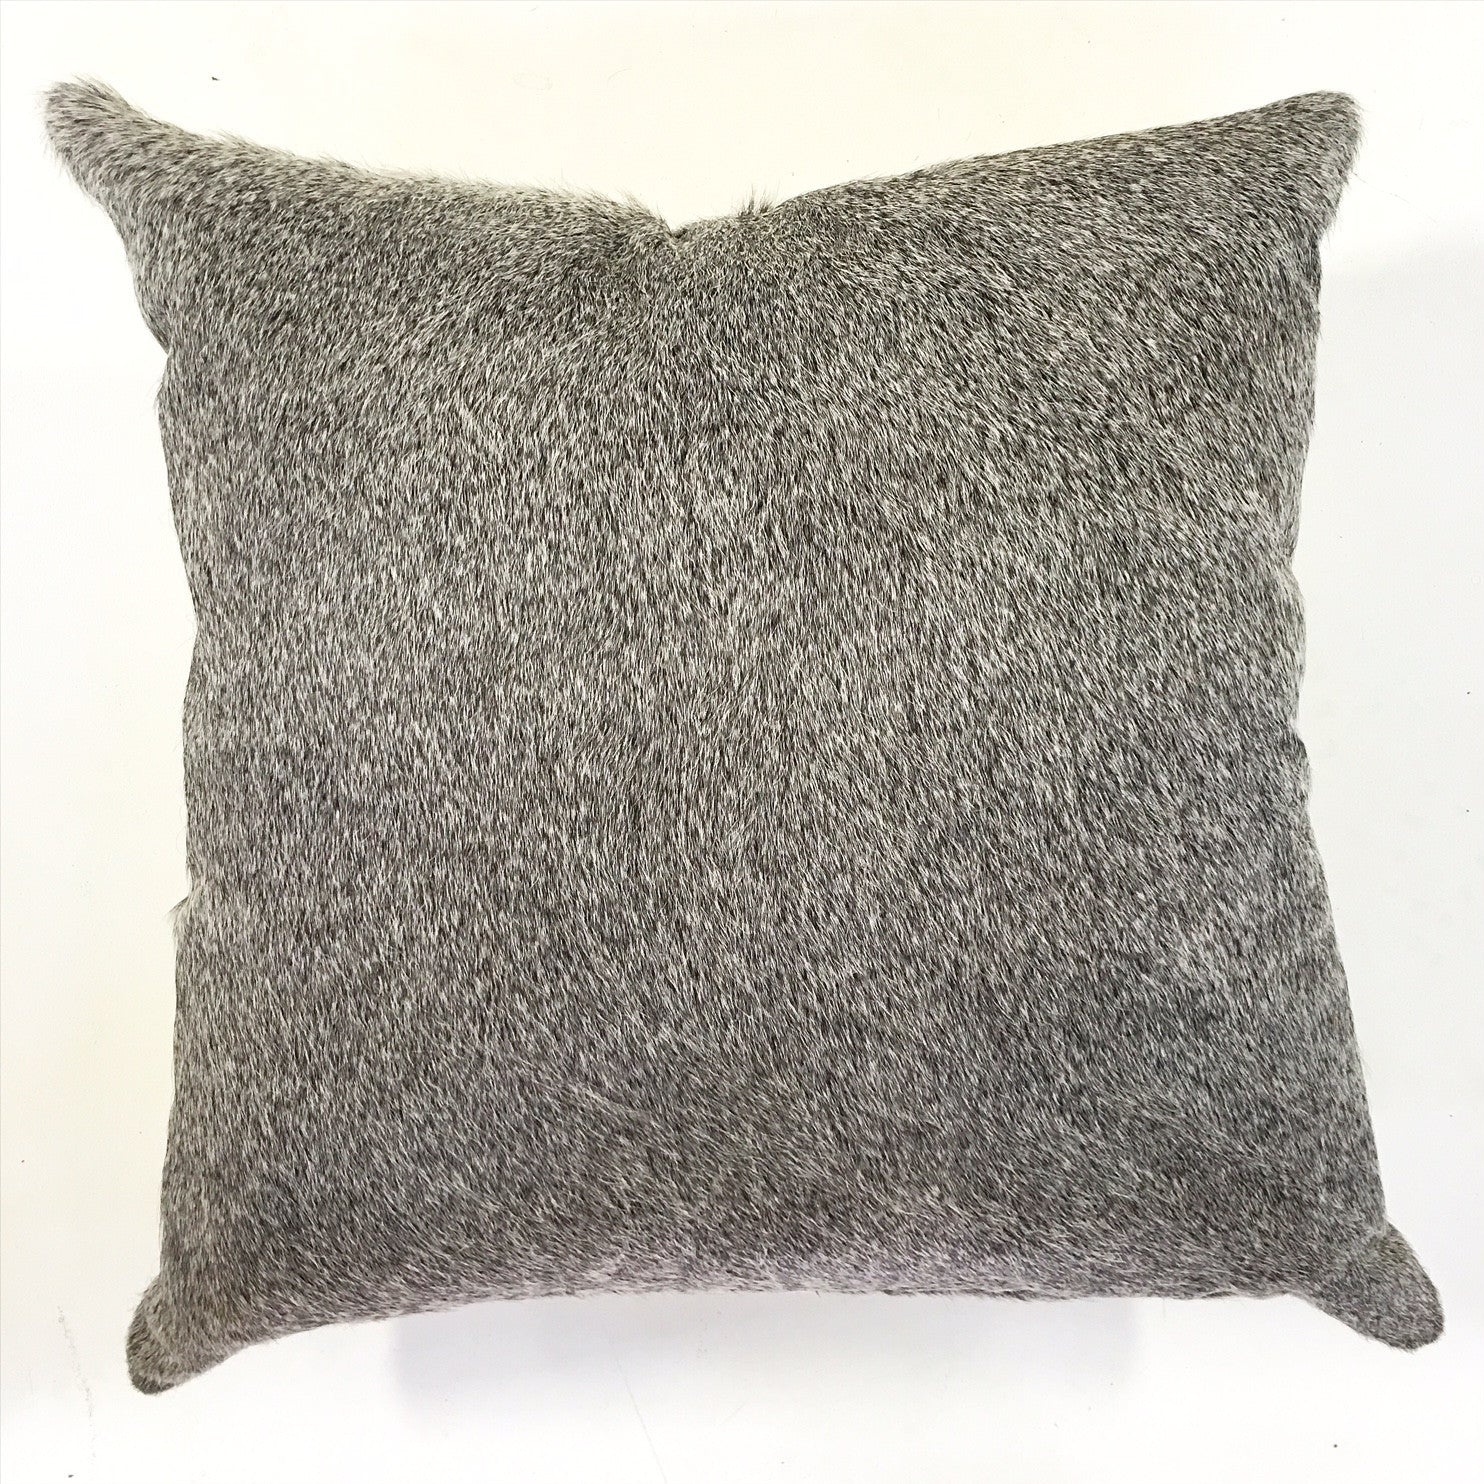 "Salt & Pepper Cowhide Pillow, 24"" - FORSYTH"